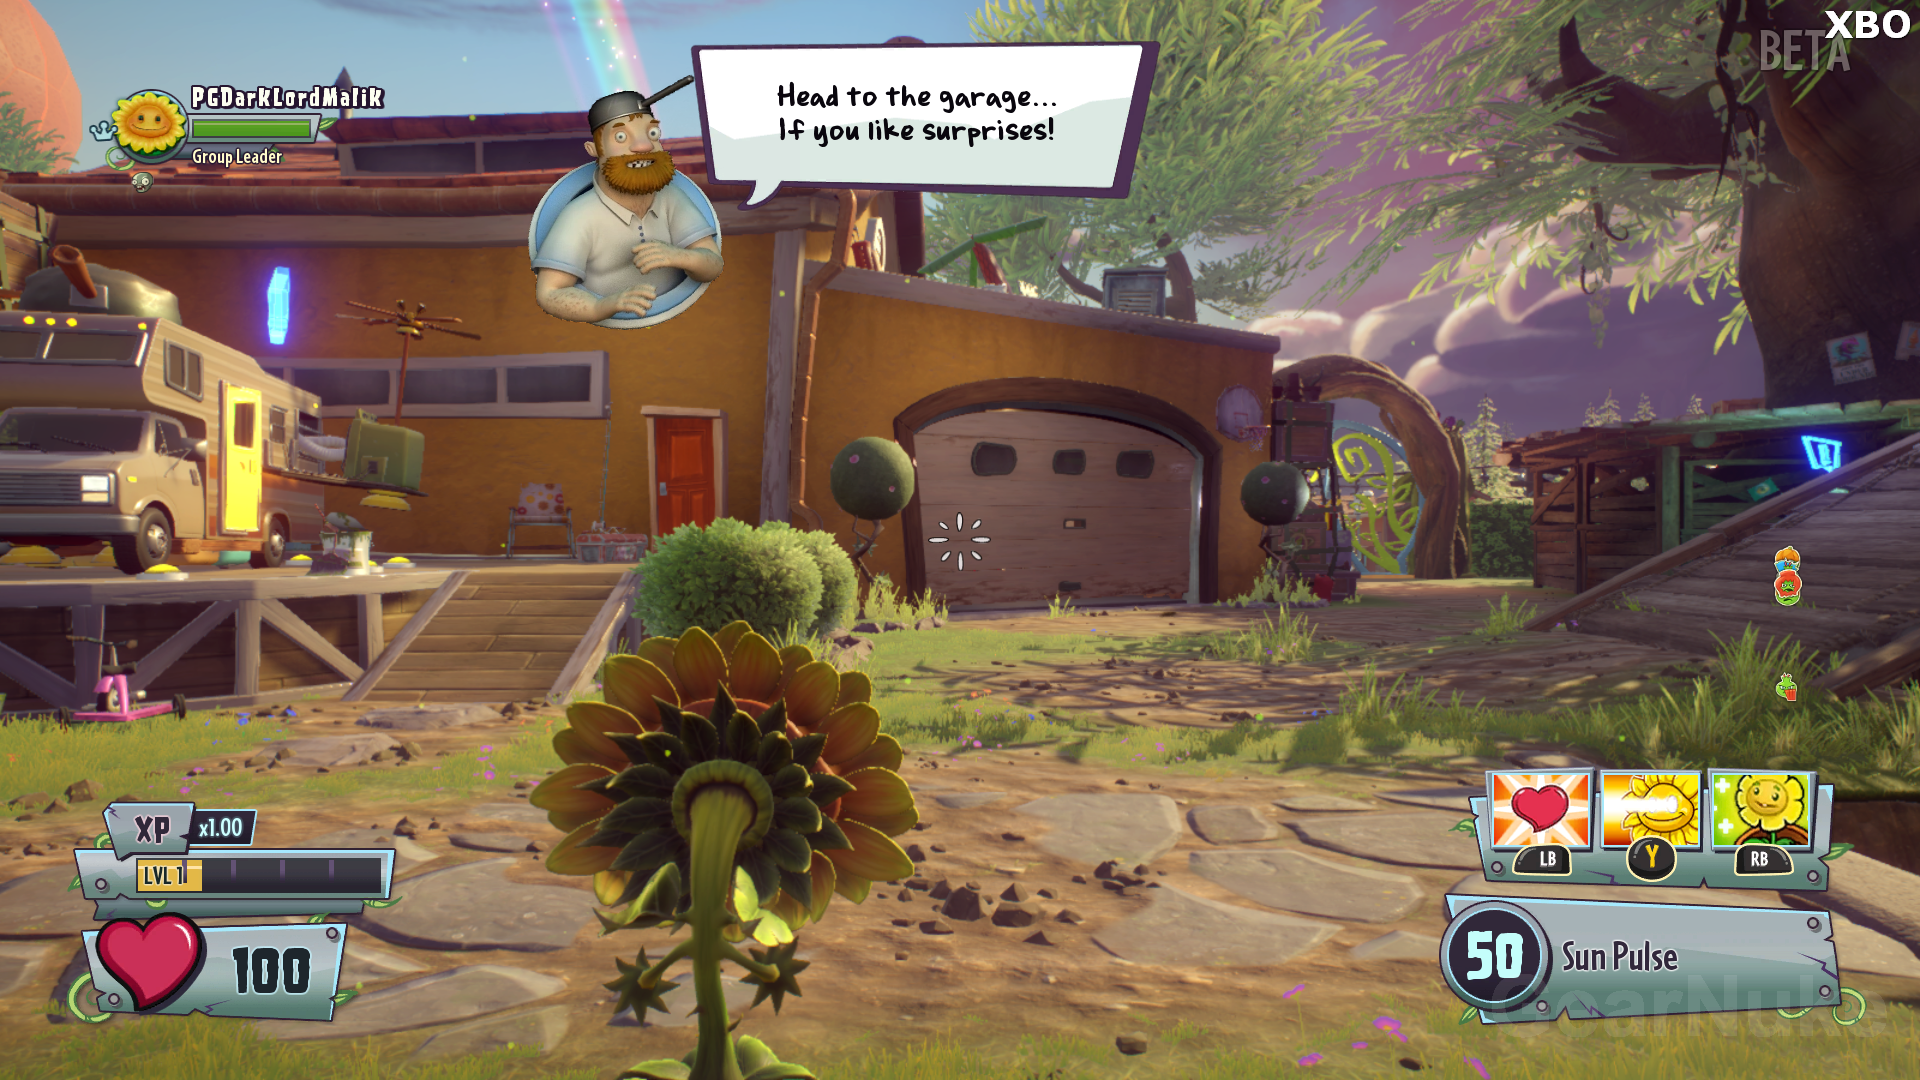 Pvz garden warfare 2 ps4 vs xbo beta image comparison - Plants vs zombies garden warfare xbox one ...